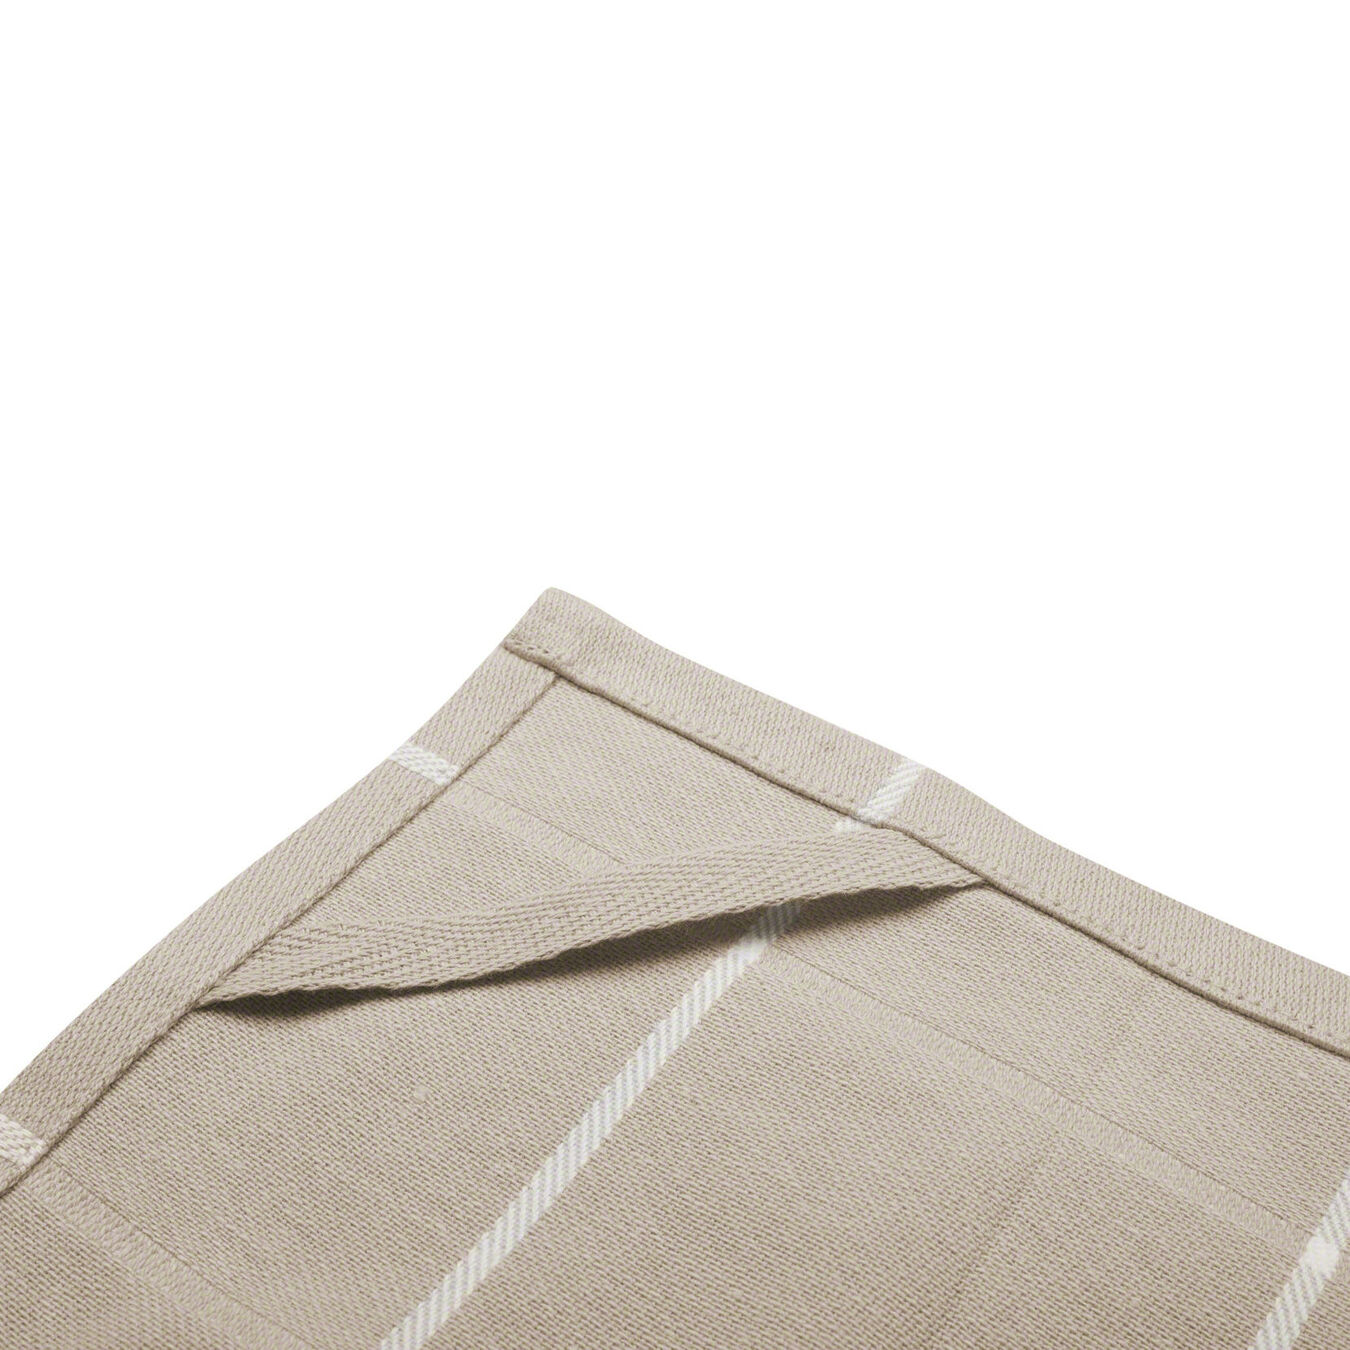 2 Piece Cotton Kitchen towel set checkered, Taupe,,large 8